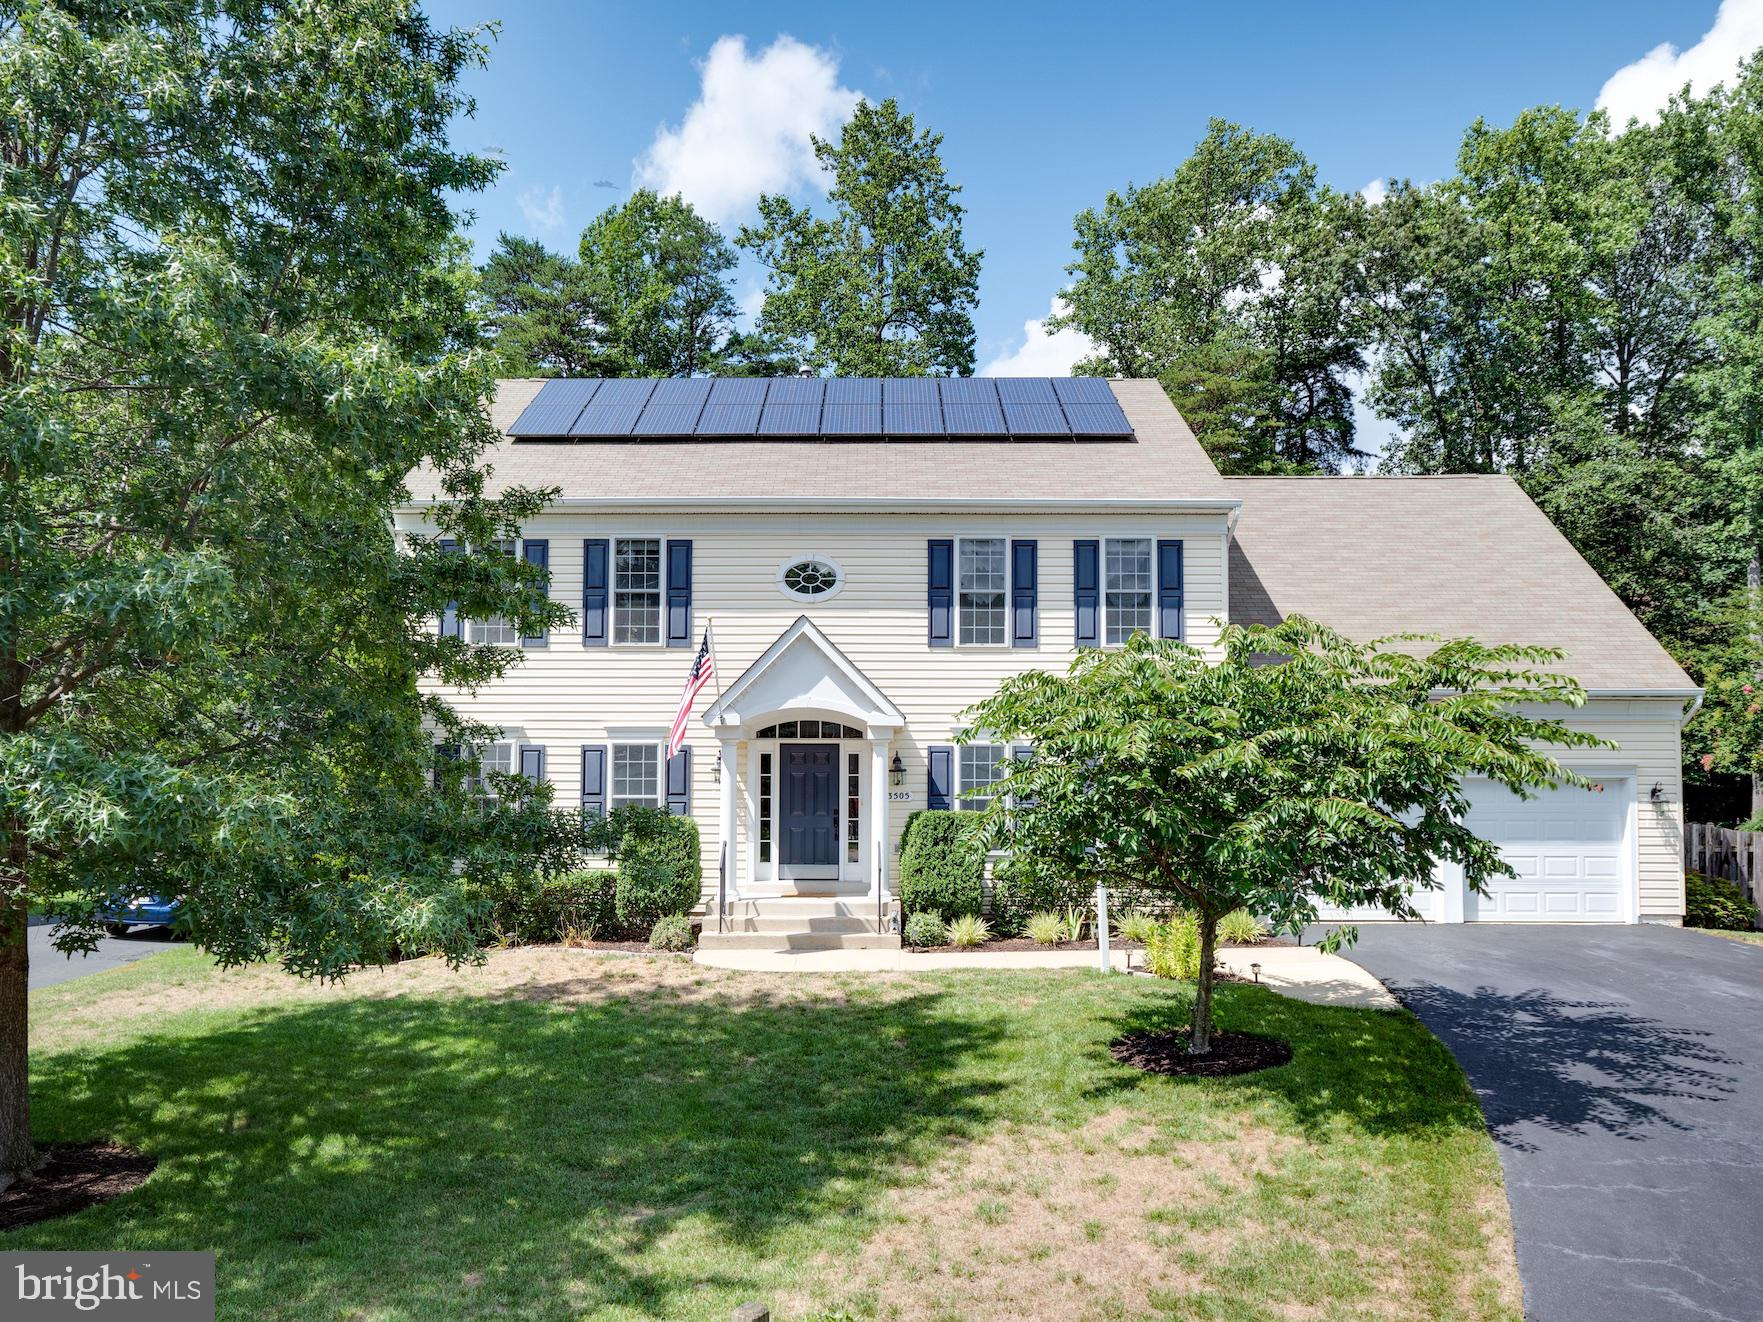 This stunning home is poised in a quiet cul-de-sac yet minutes to so many conveniences! Upon entry y